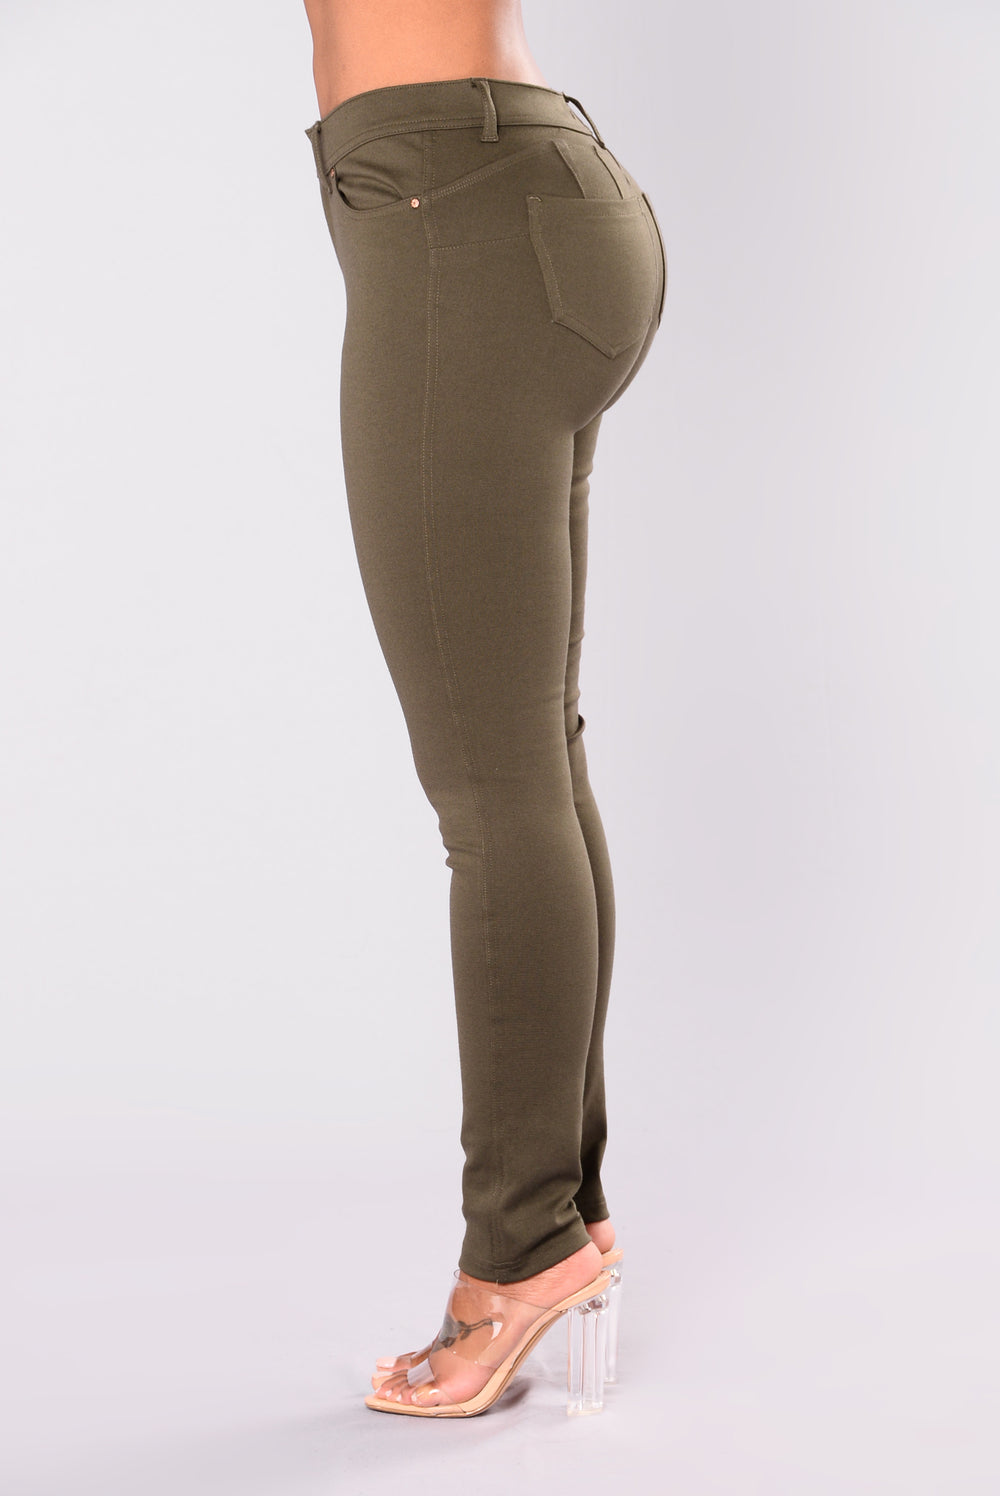 Bottoms Up Booty Shaping Ponte Pants - Olive